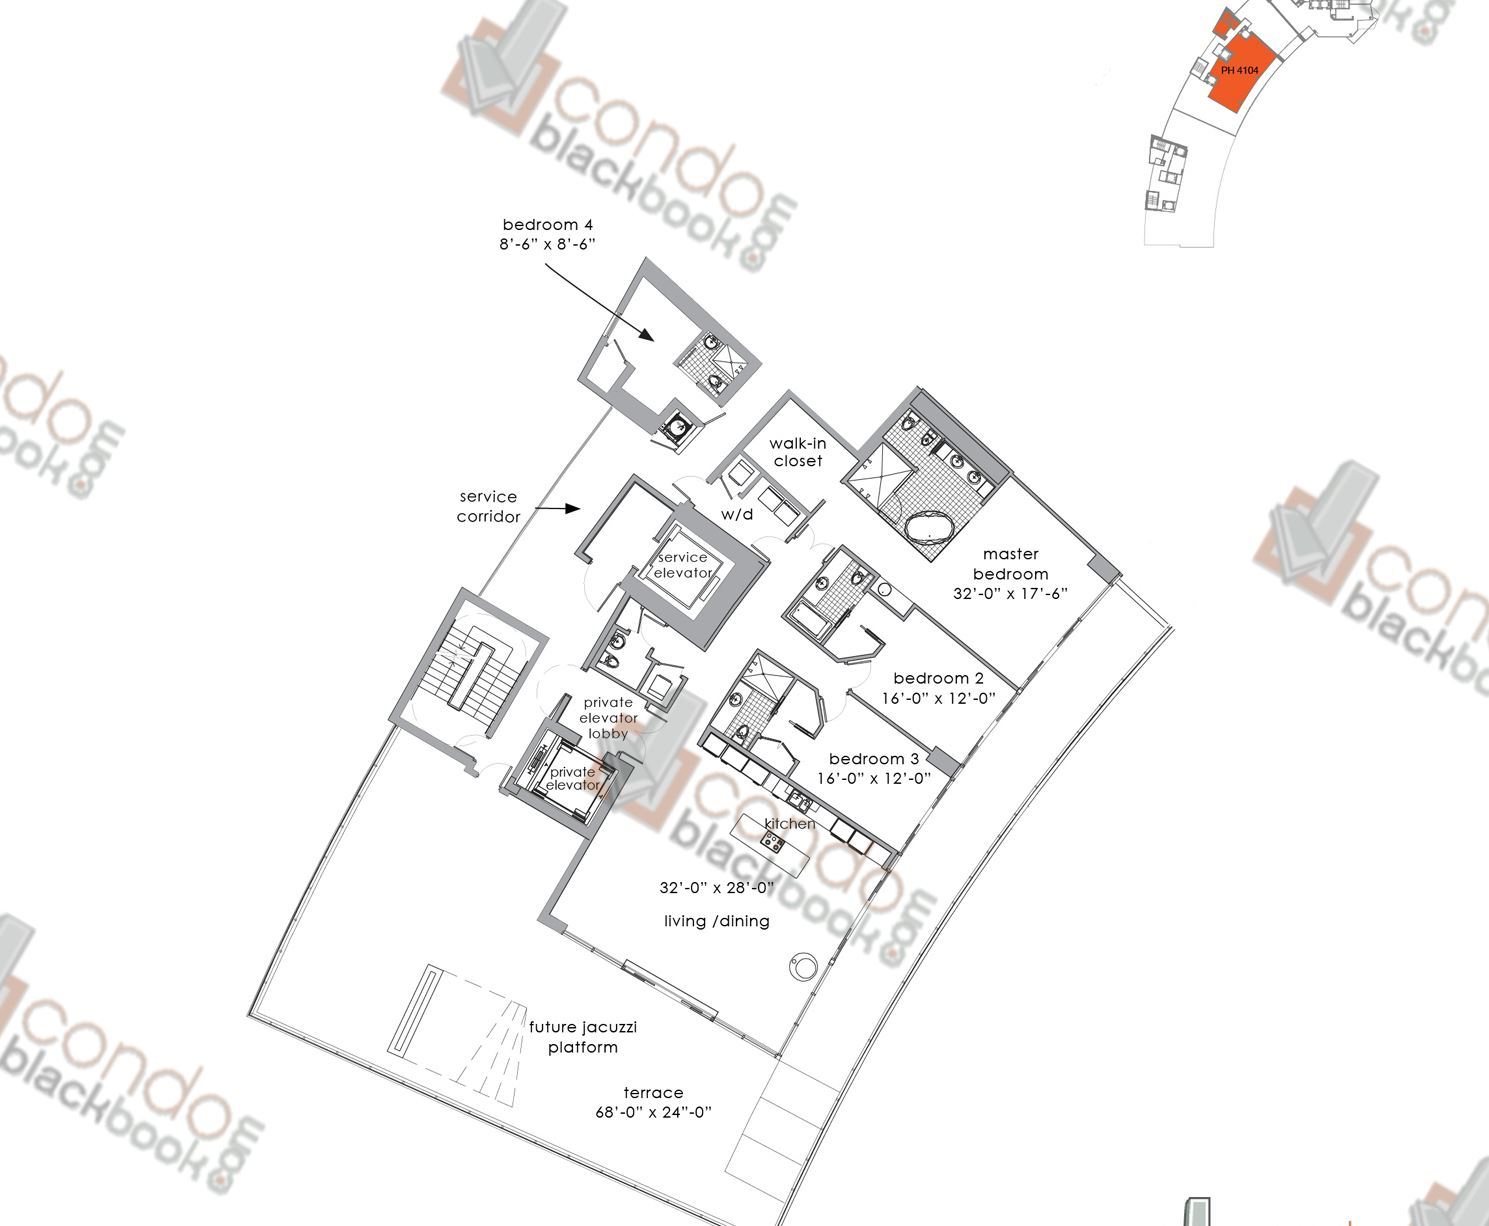 Floor plan for Paramount Bay Edgewater Miami, model PENTHOUSE 4104, line 04, 4/4,5 bedrooms, 3,003 sq ft